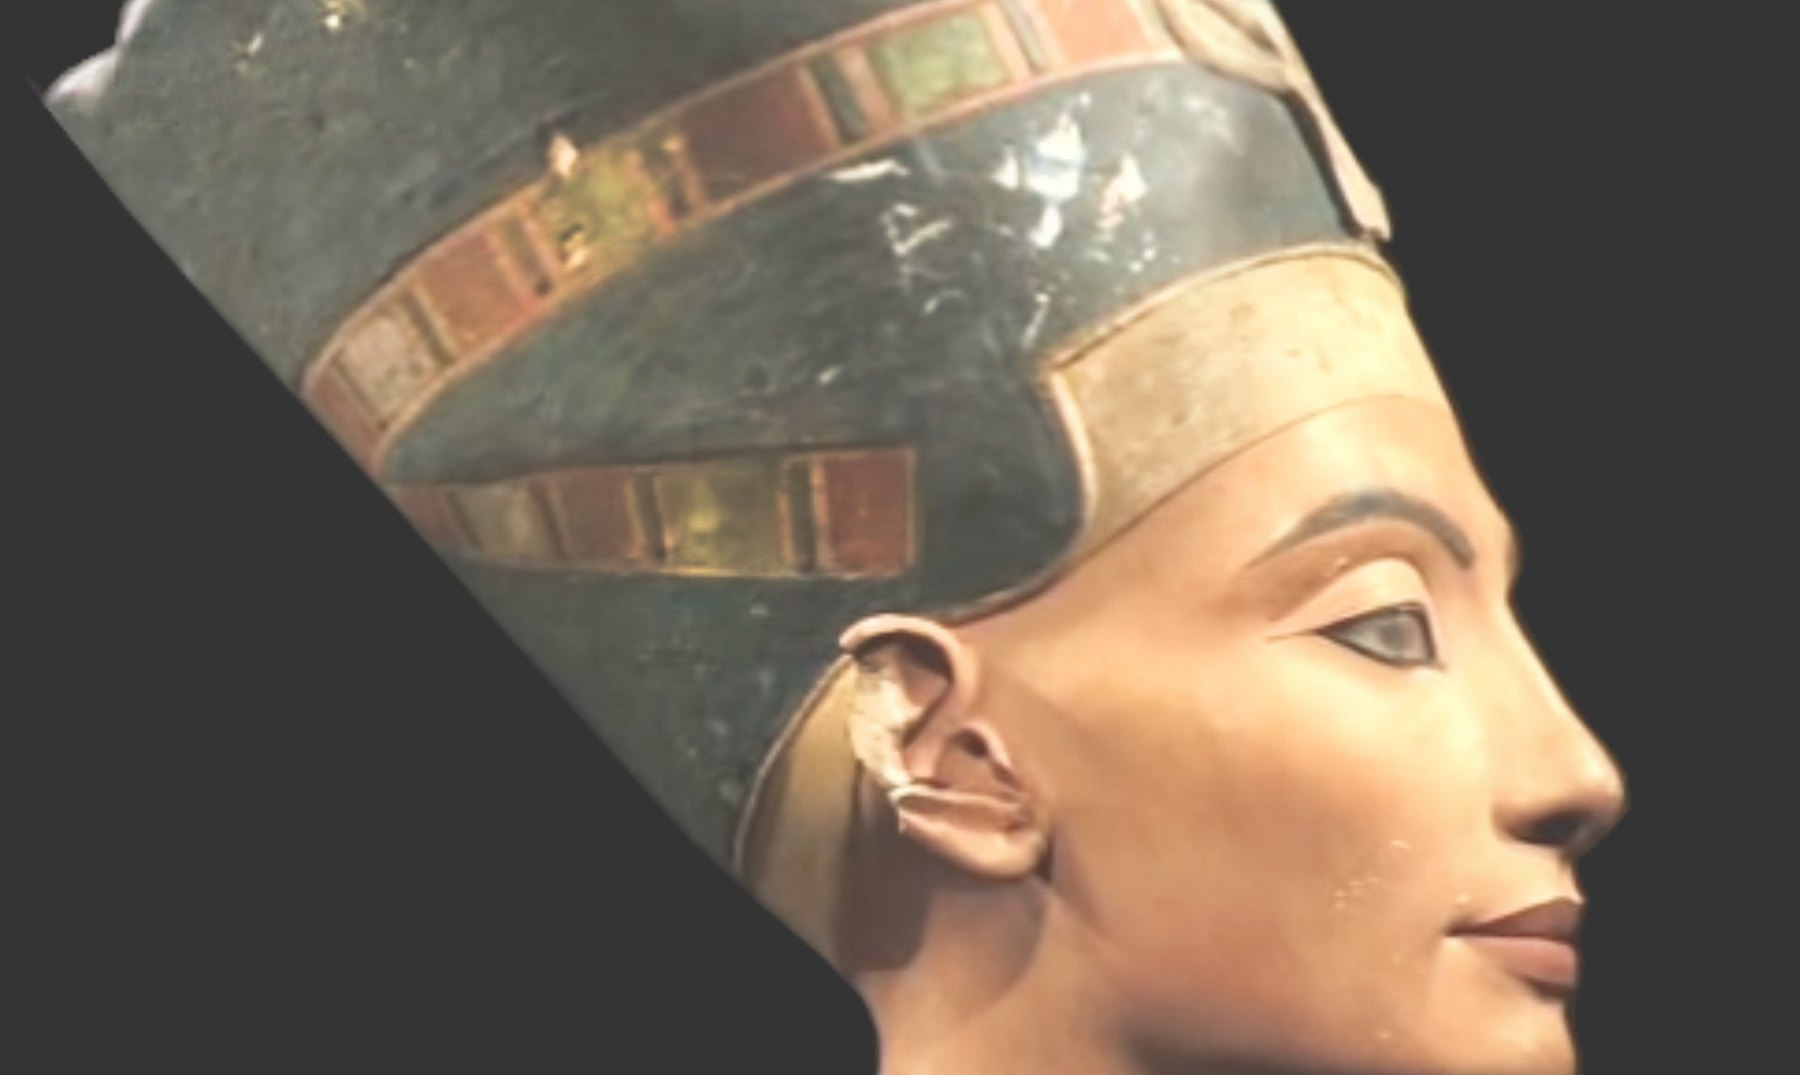 El desconcertante amor de Hitler por Nefertiti